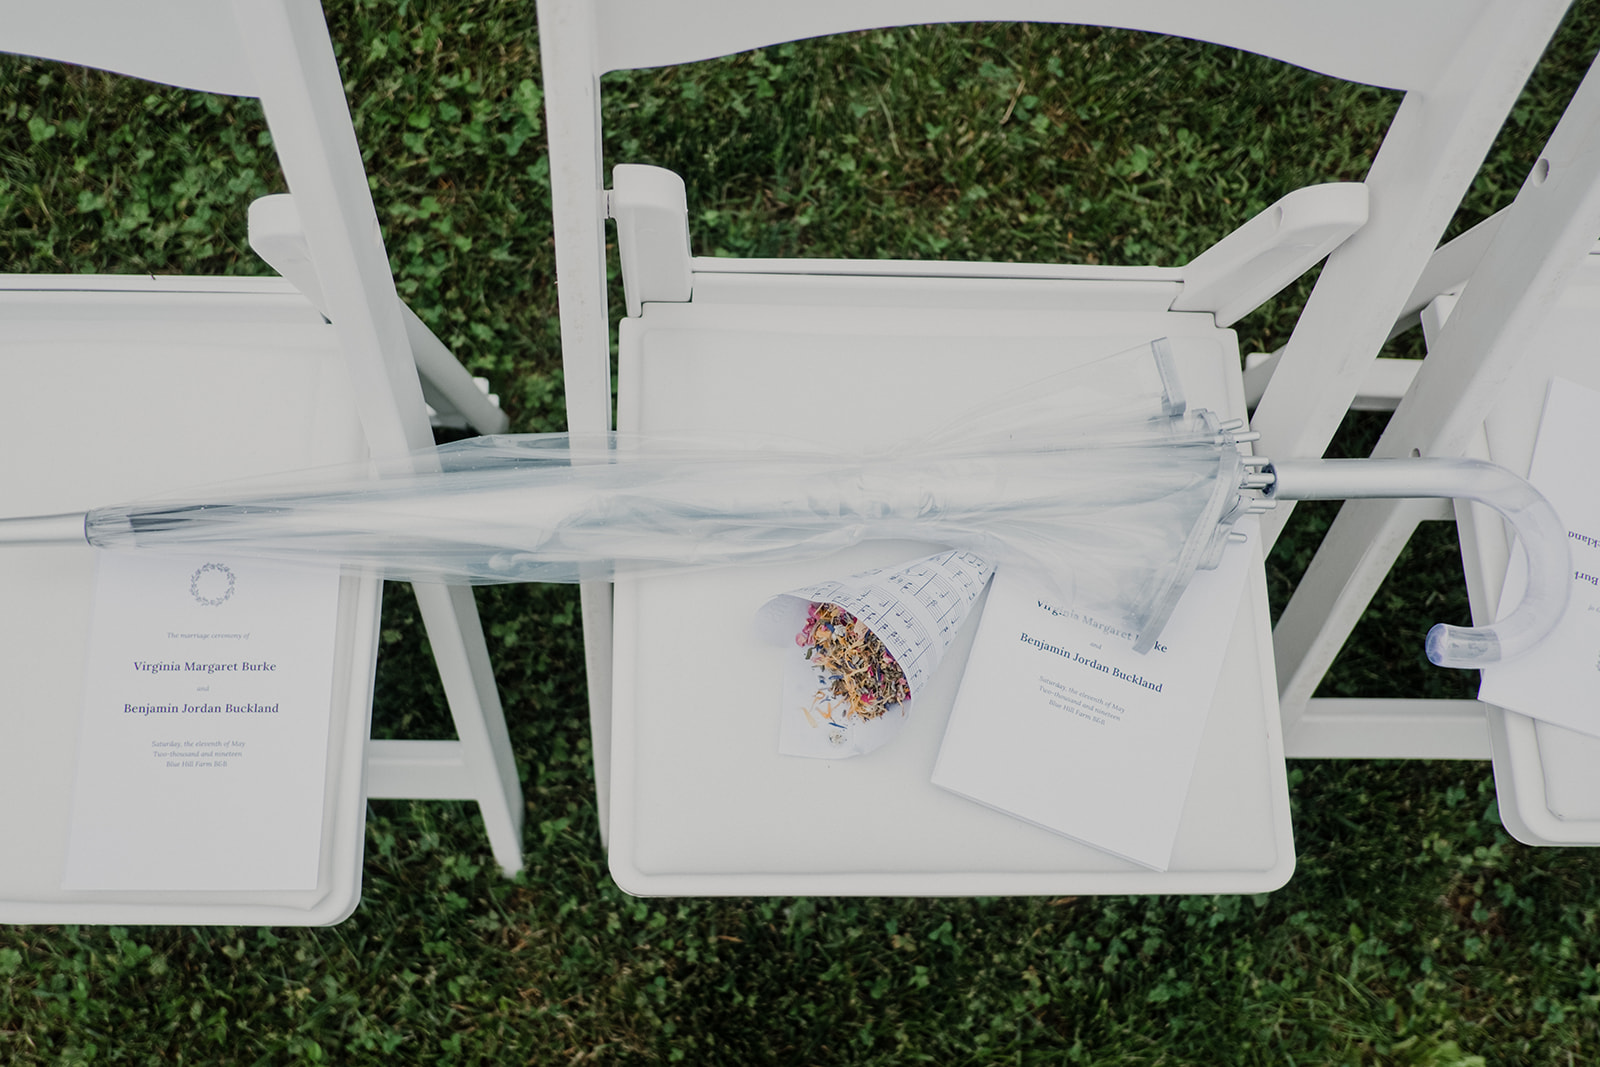 An umbrella sits next to the programs at an outdoor wedding ceremony at Blue Hill Farm in Waterford, VA.